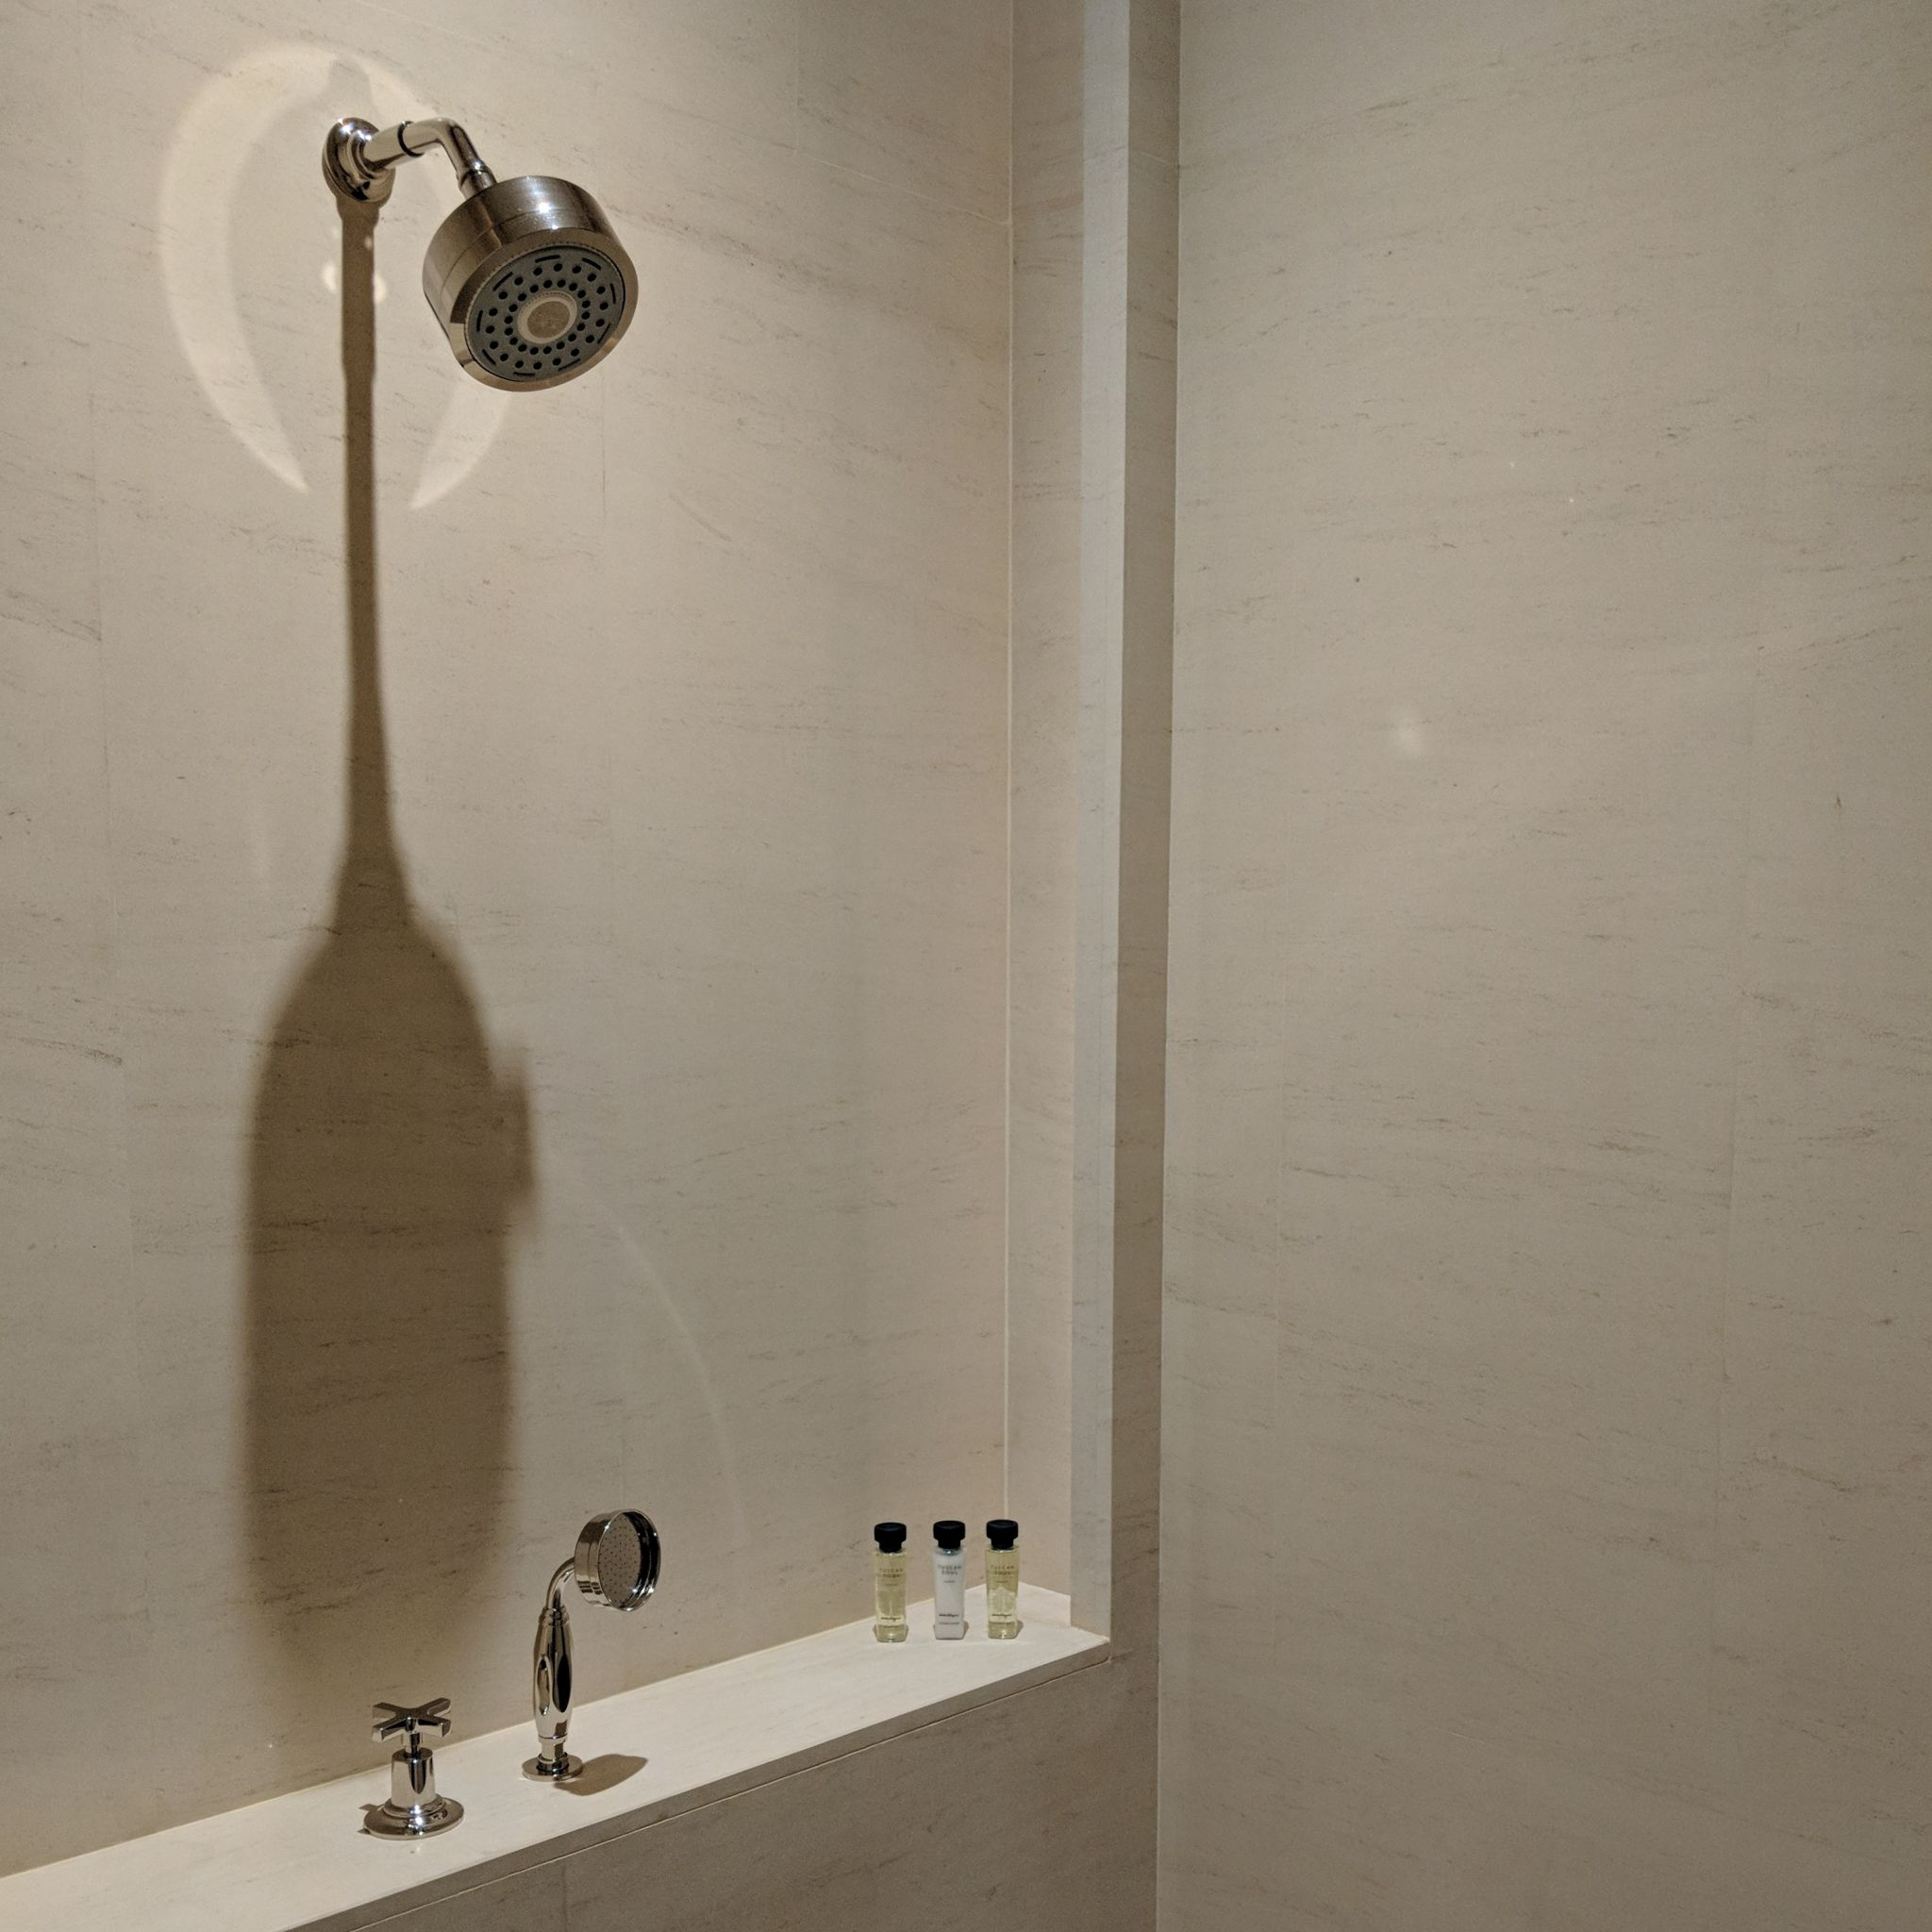 The Capitol Kempinski Hotel Singapore stamford suite rainfall shower